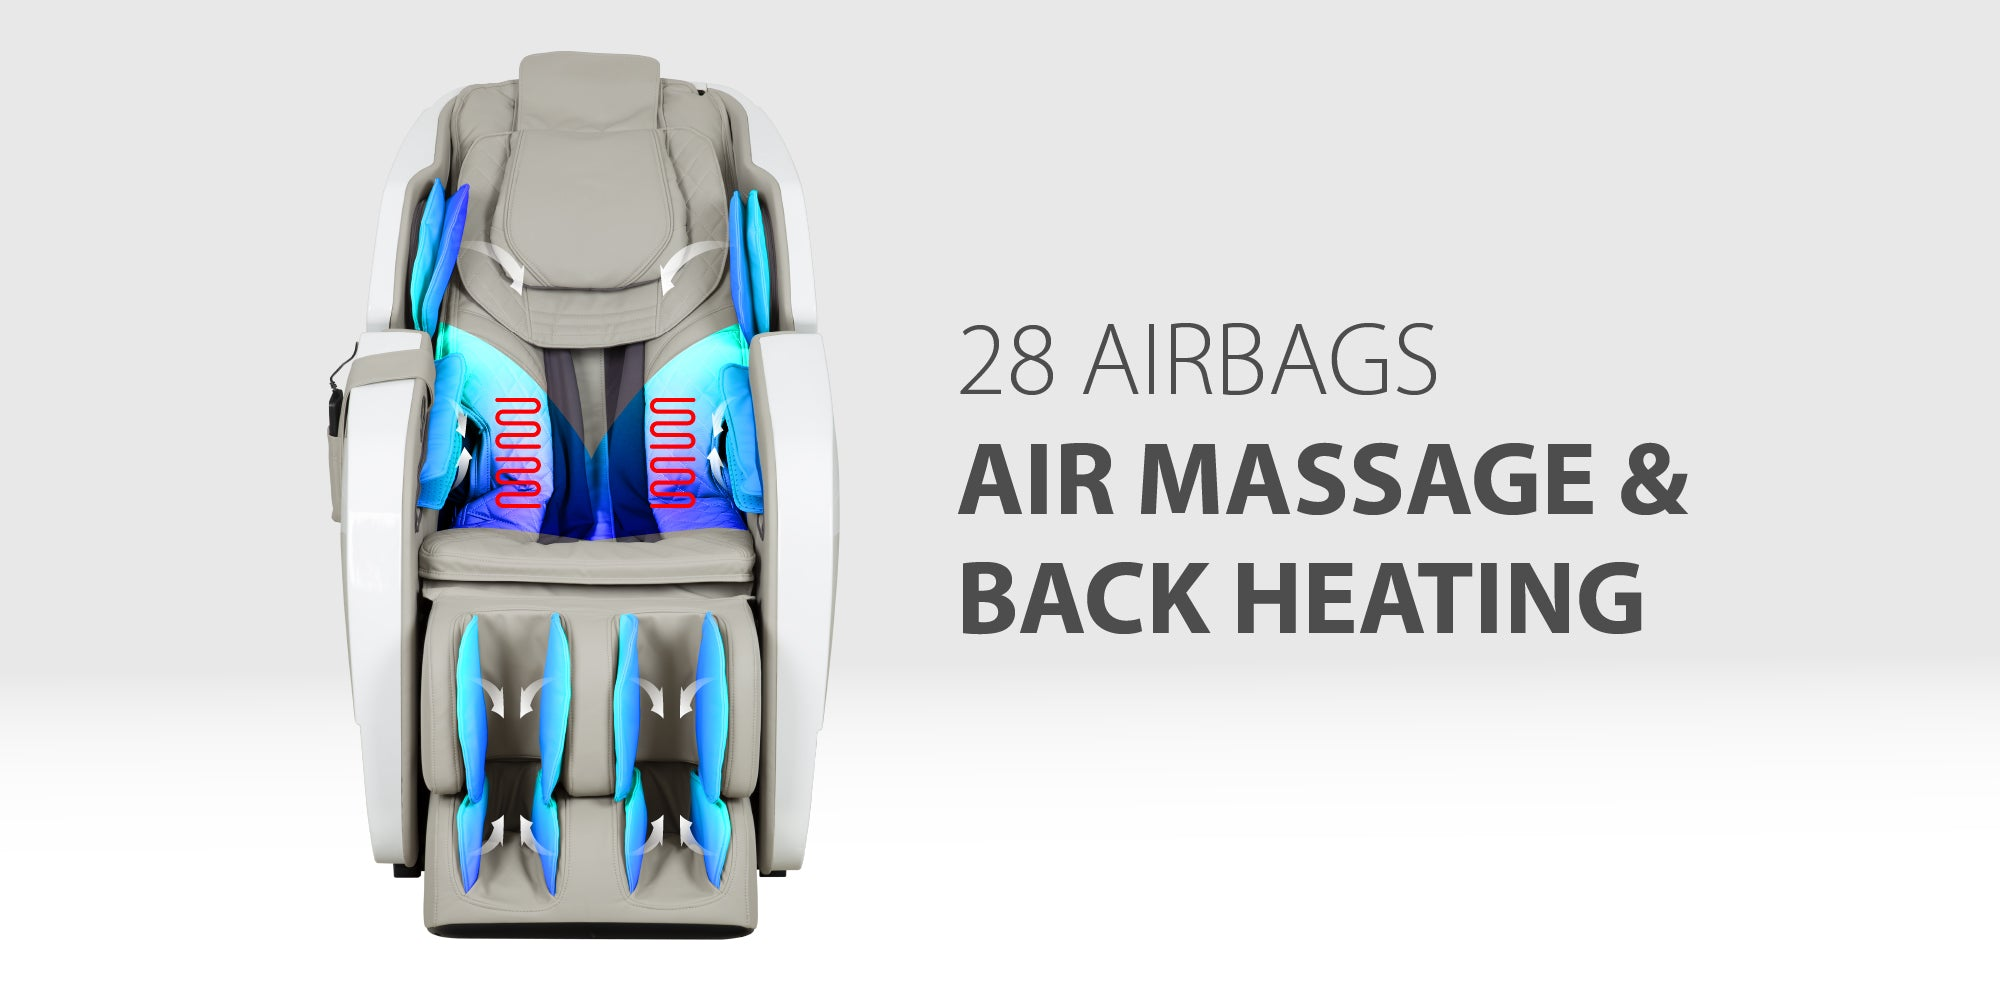 28 airbags air massage & back heating